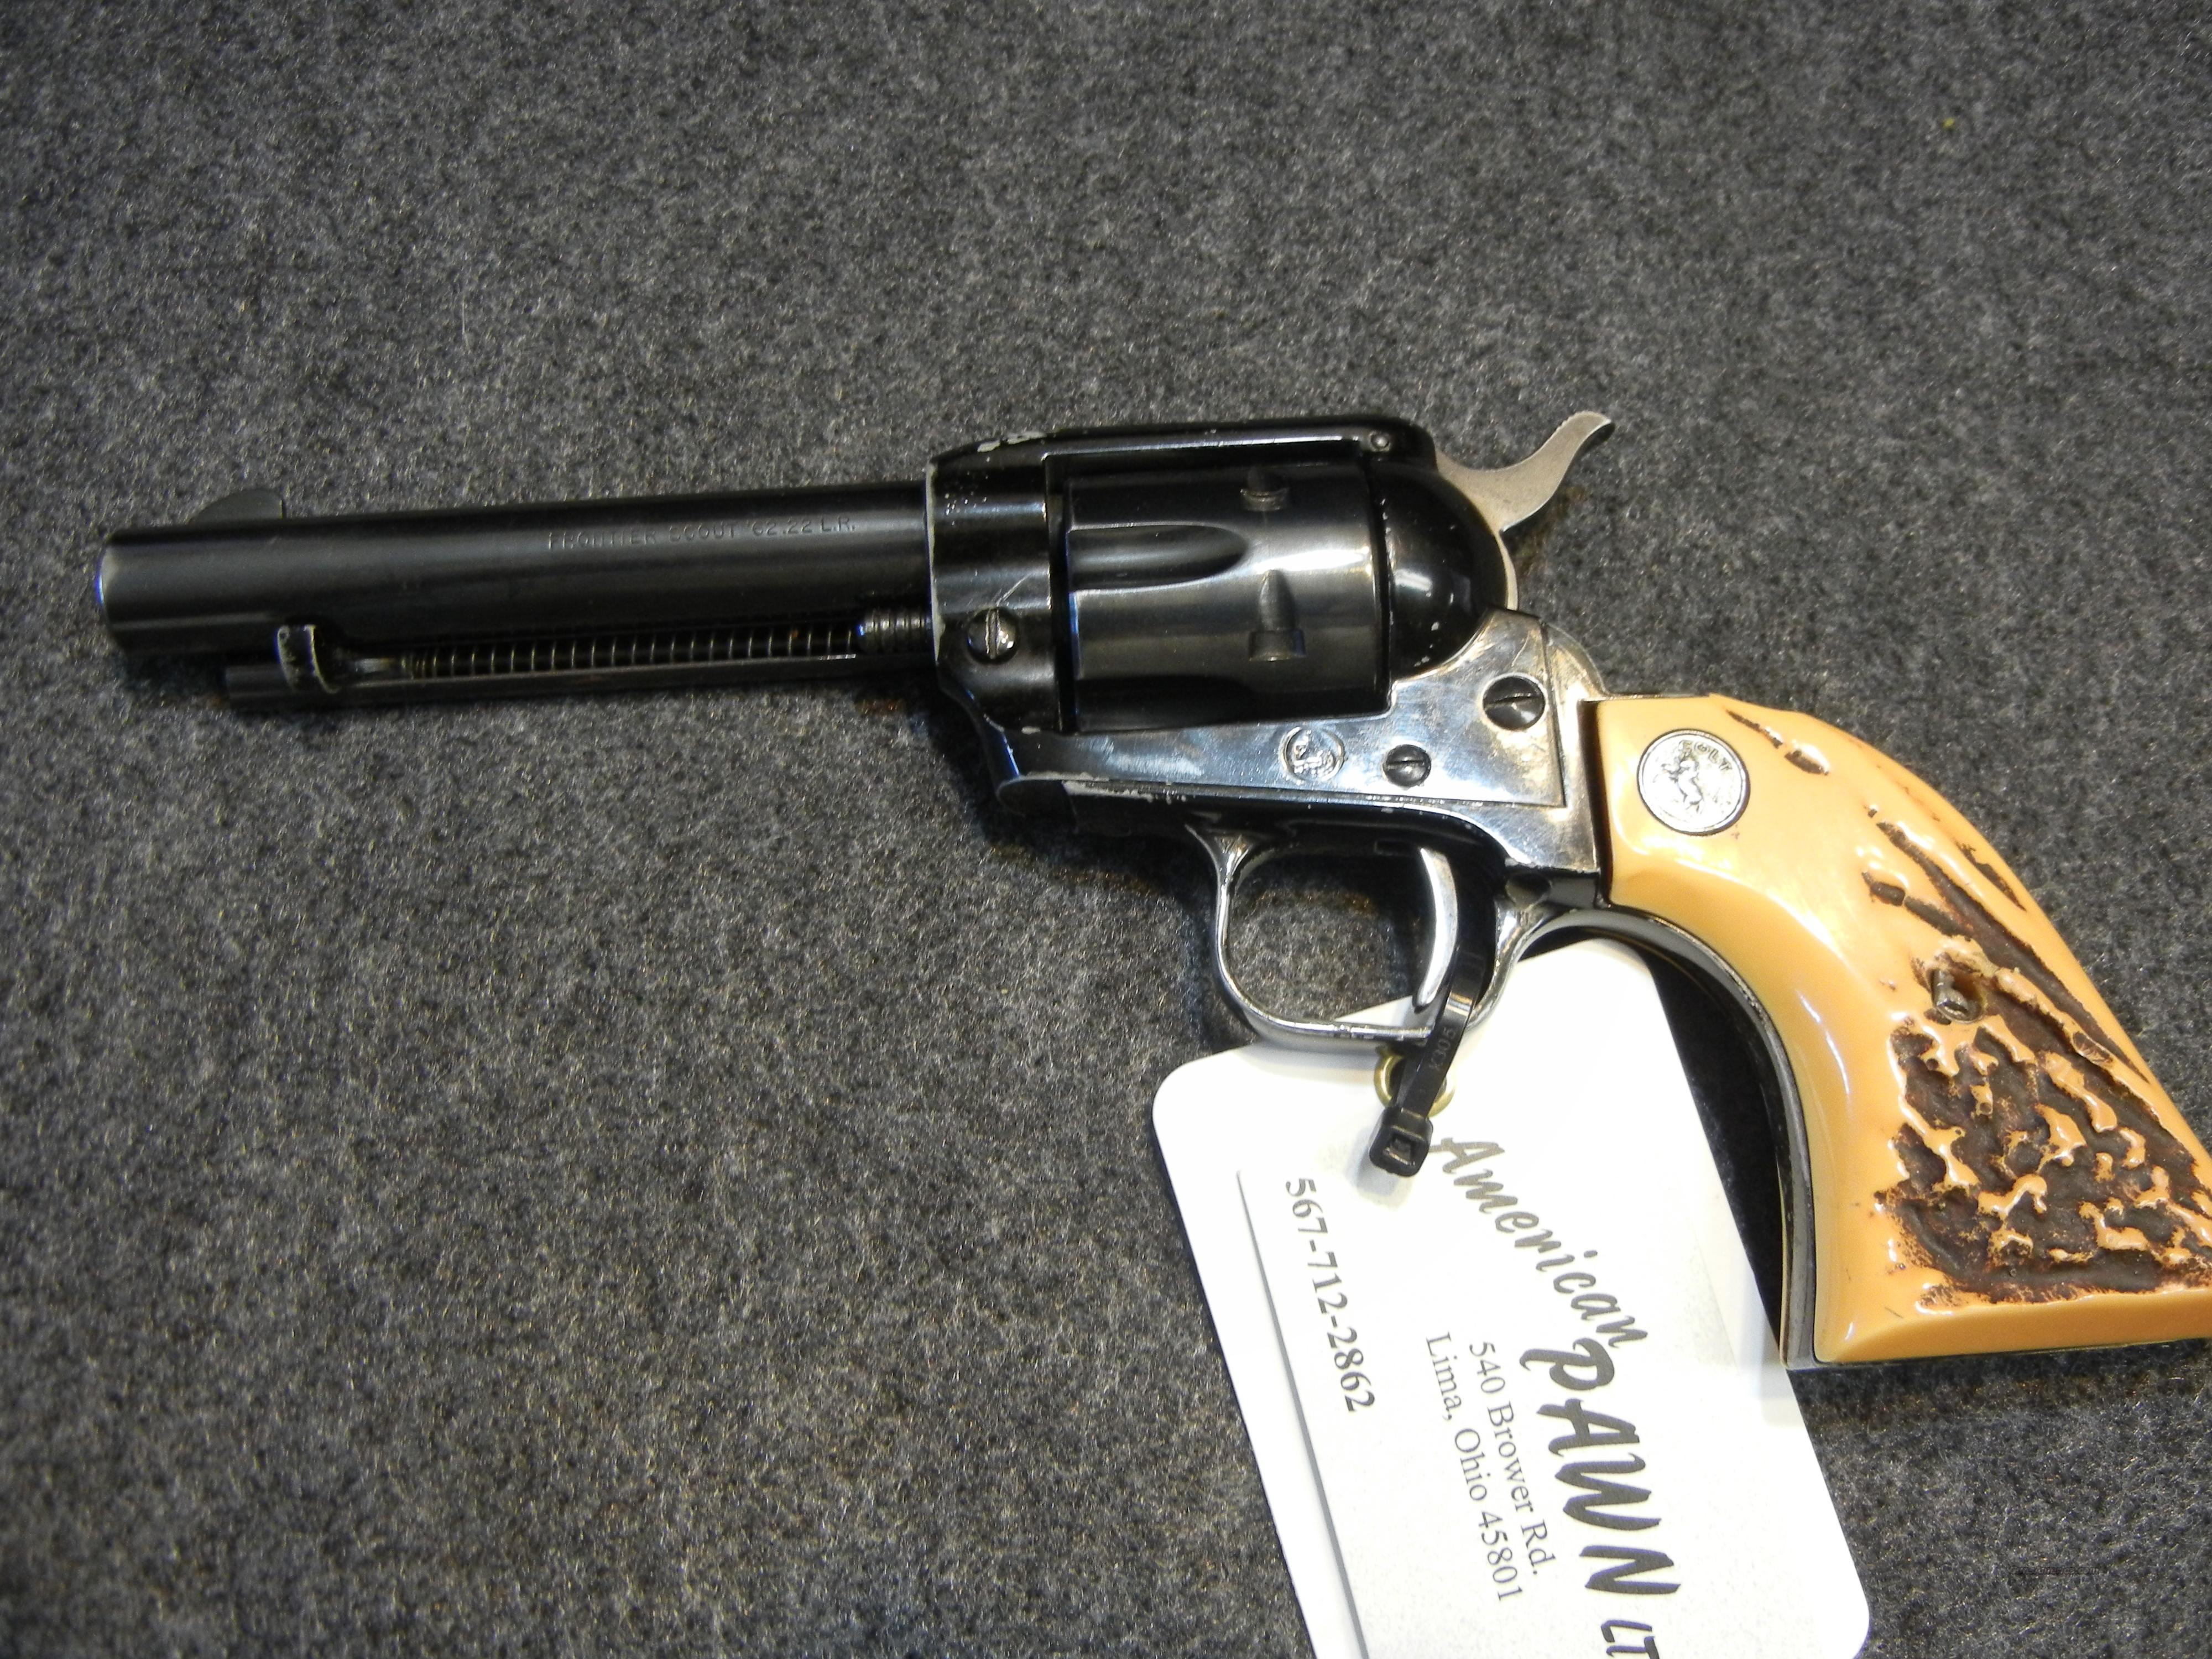 Colt New Frontier .22lr year 1963  Guns > Pistols > Colt Single Action Revolvers - Modern (22 Cal.)